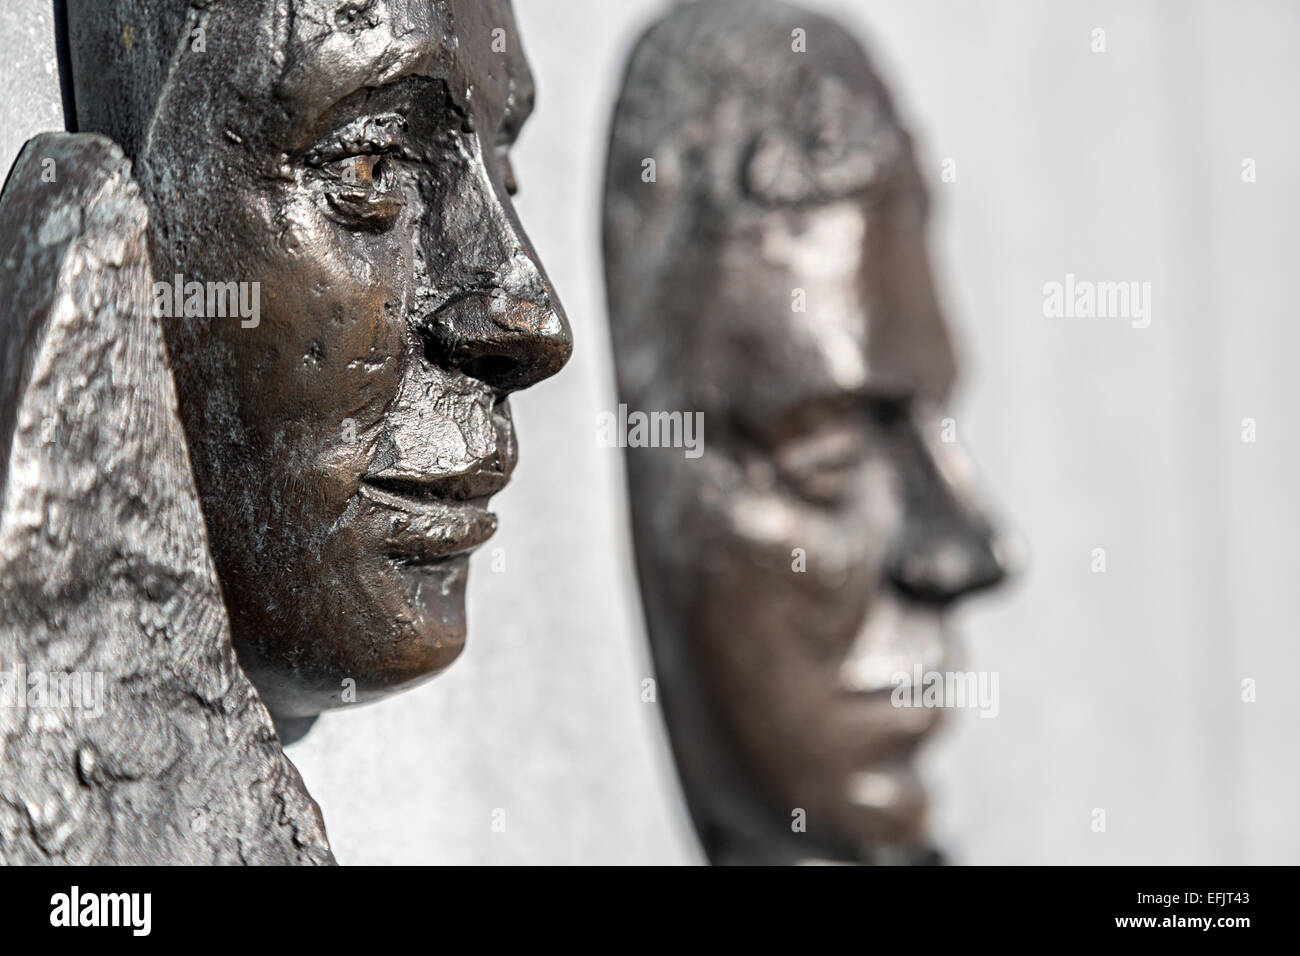 Faces in bronze on the John F. Kennedy memorial on quayside at New Ross, Co. Wexford, Republic of Ireland - Stock Image